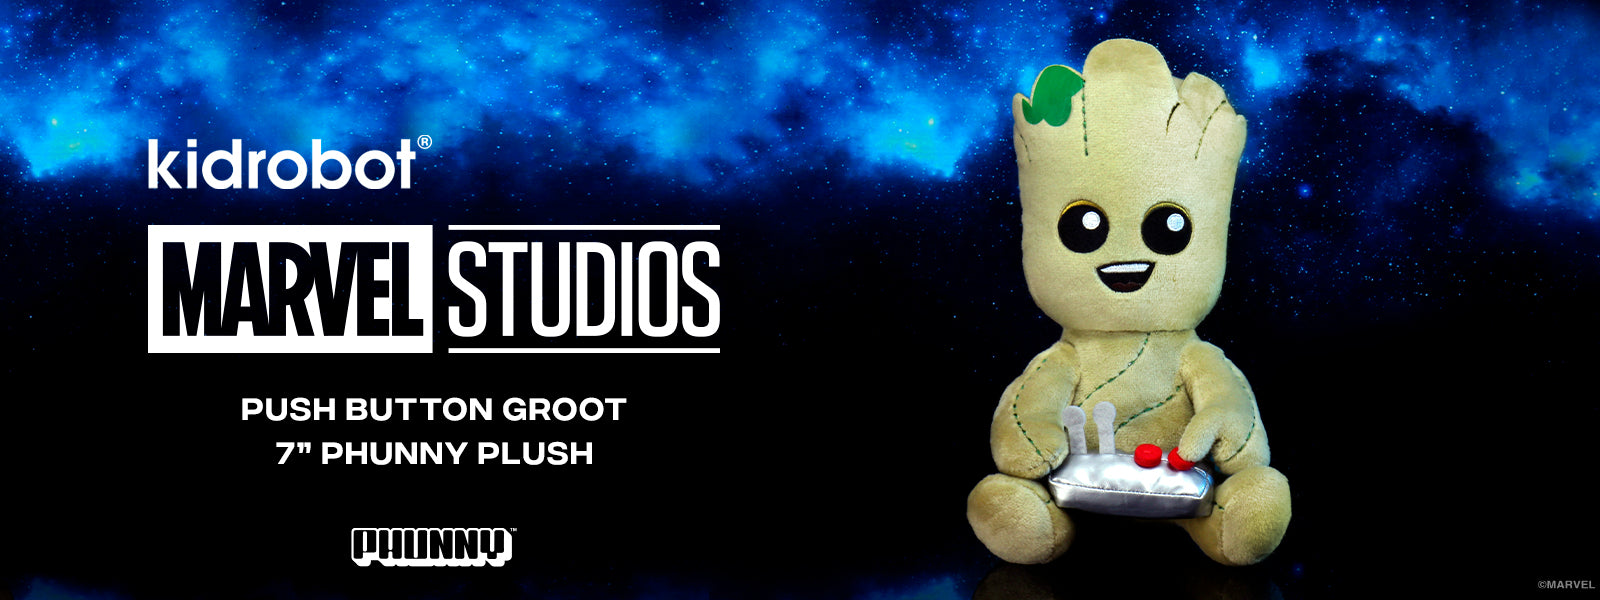 Kidrobot x Marvel - Teen Groot Video Gamer Plush